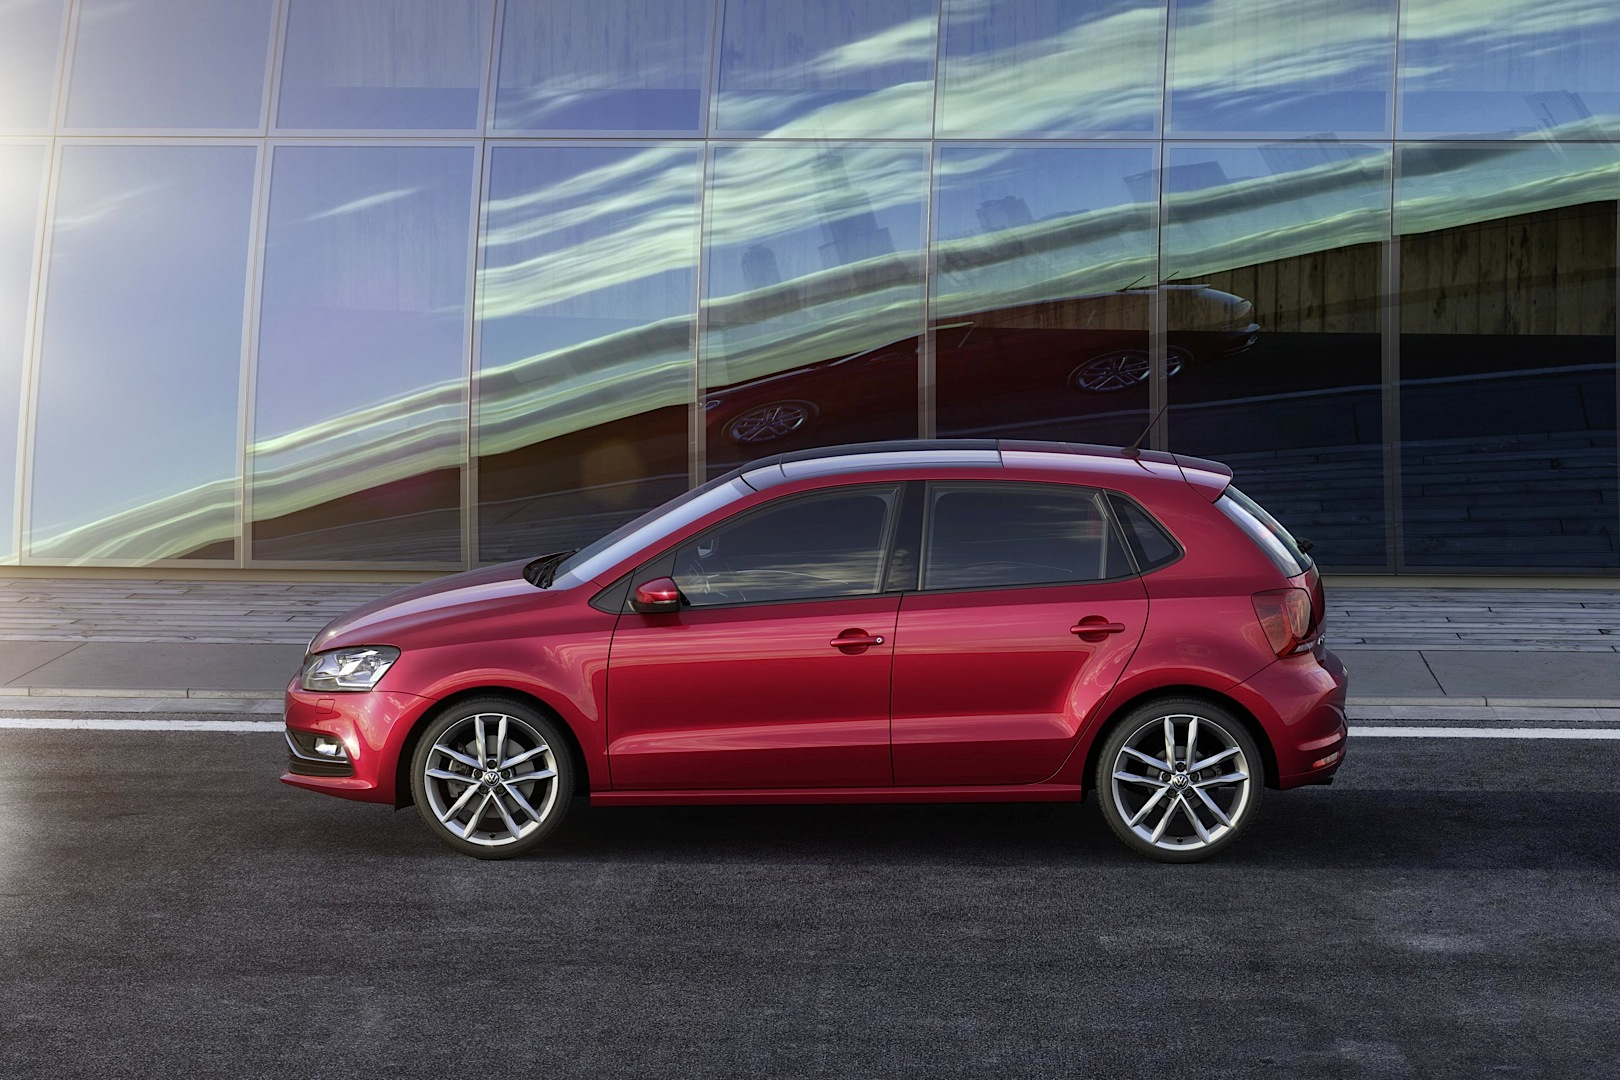 2014 Volkswagen Polo Facelift Exterior Changes